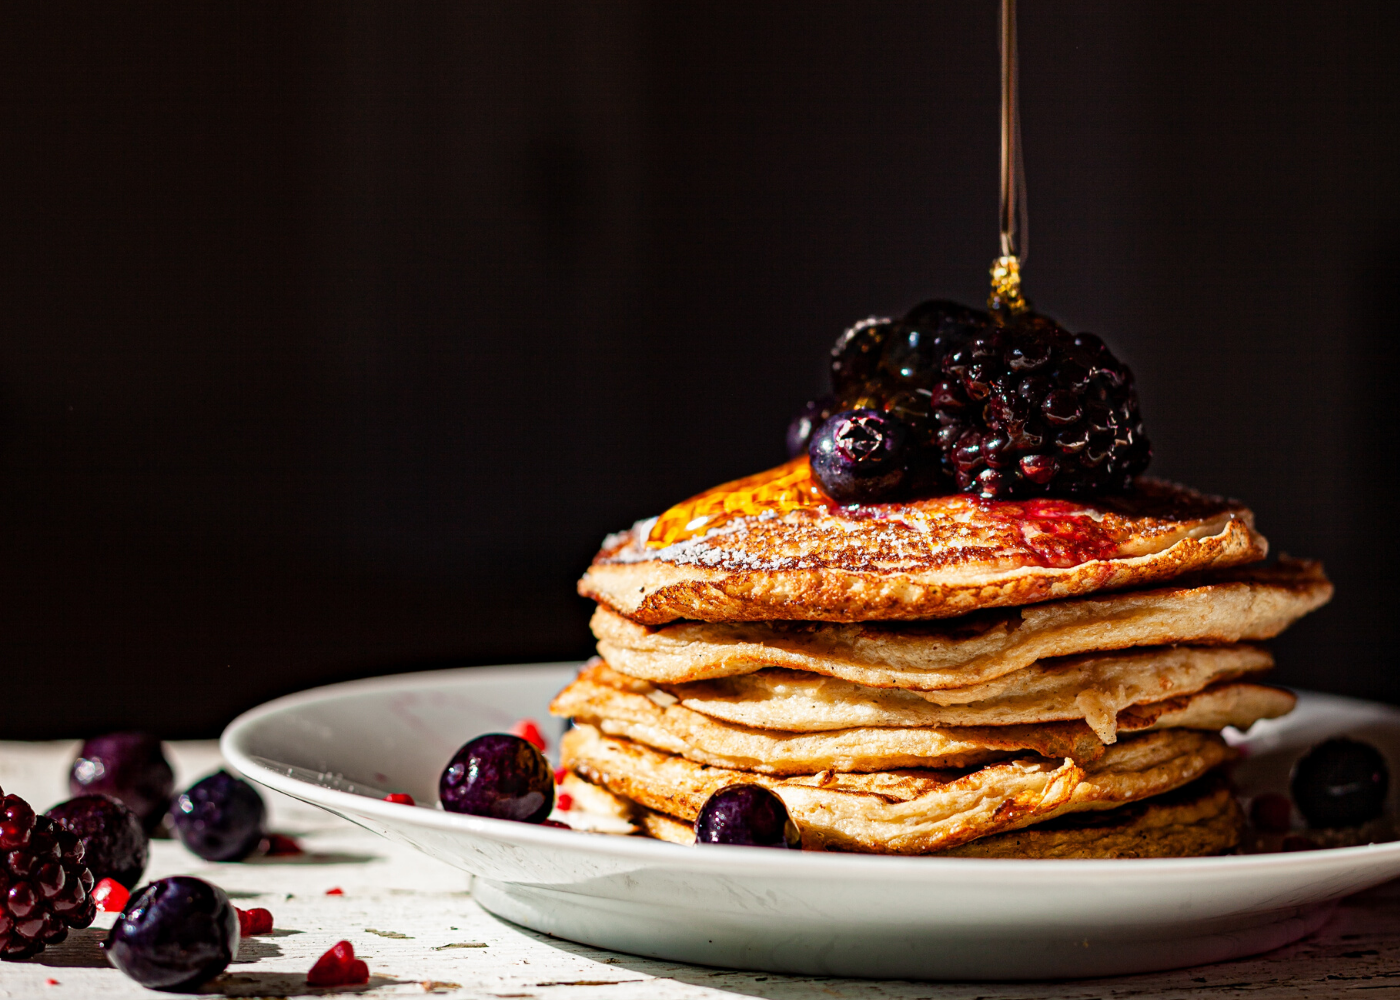 Nothing can stack up to these flippin' pancakes in Singapore